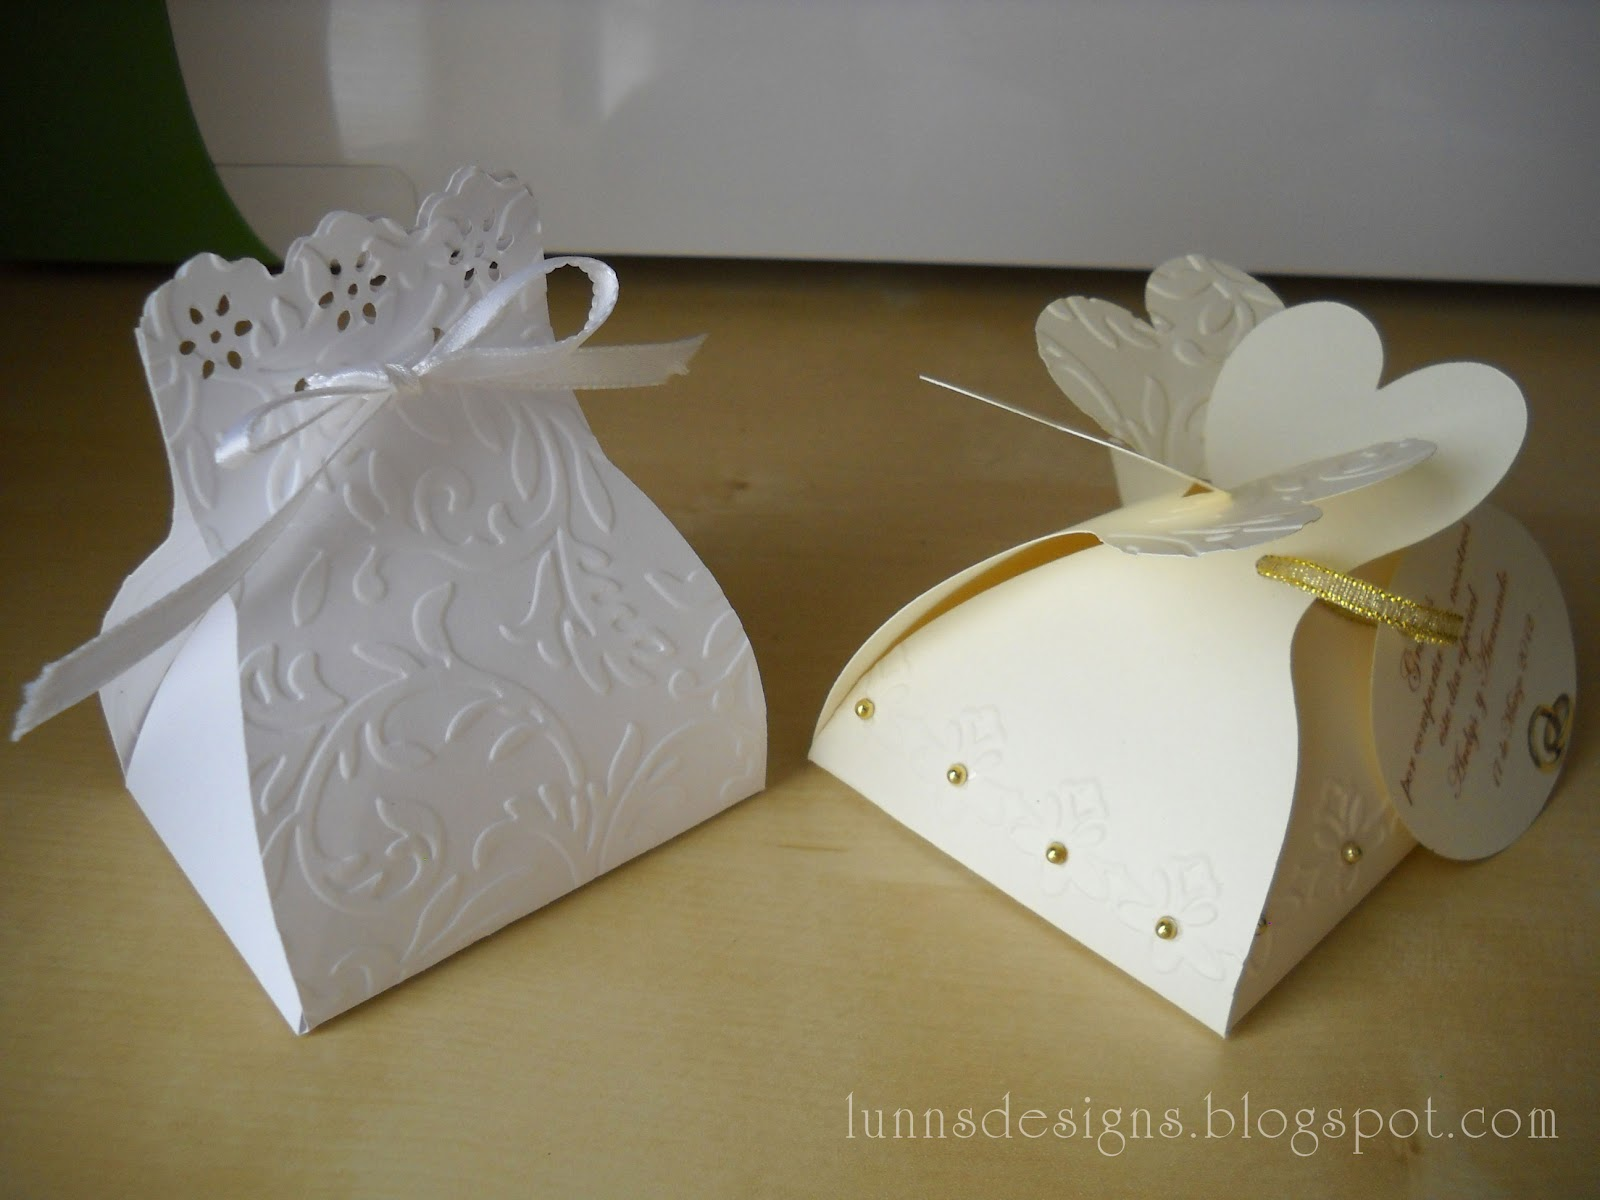 Lunns designs wedding favors the first wedding favor was made with tie the knot cricut cartridge this is a perfect cartridge if you are planning a wedding i also embossed the edges junglespirit Gallery